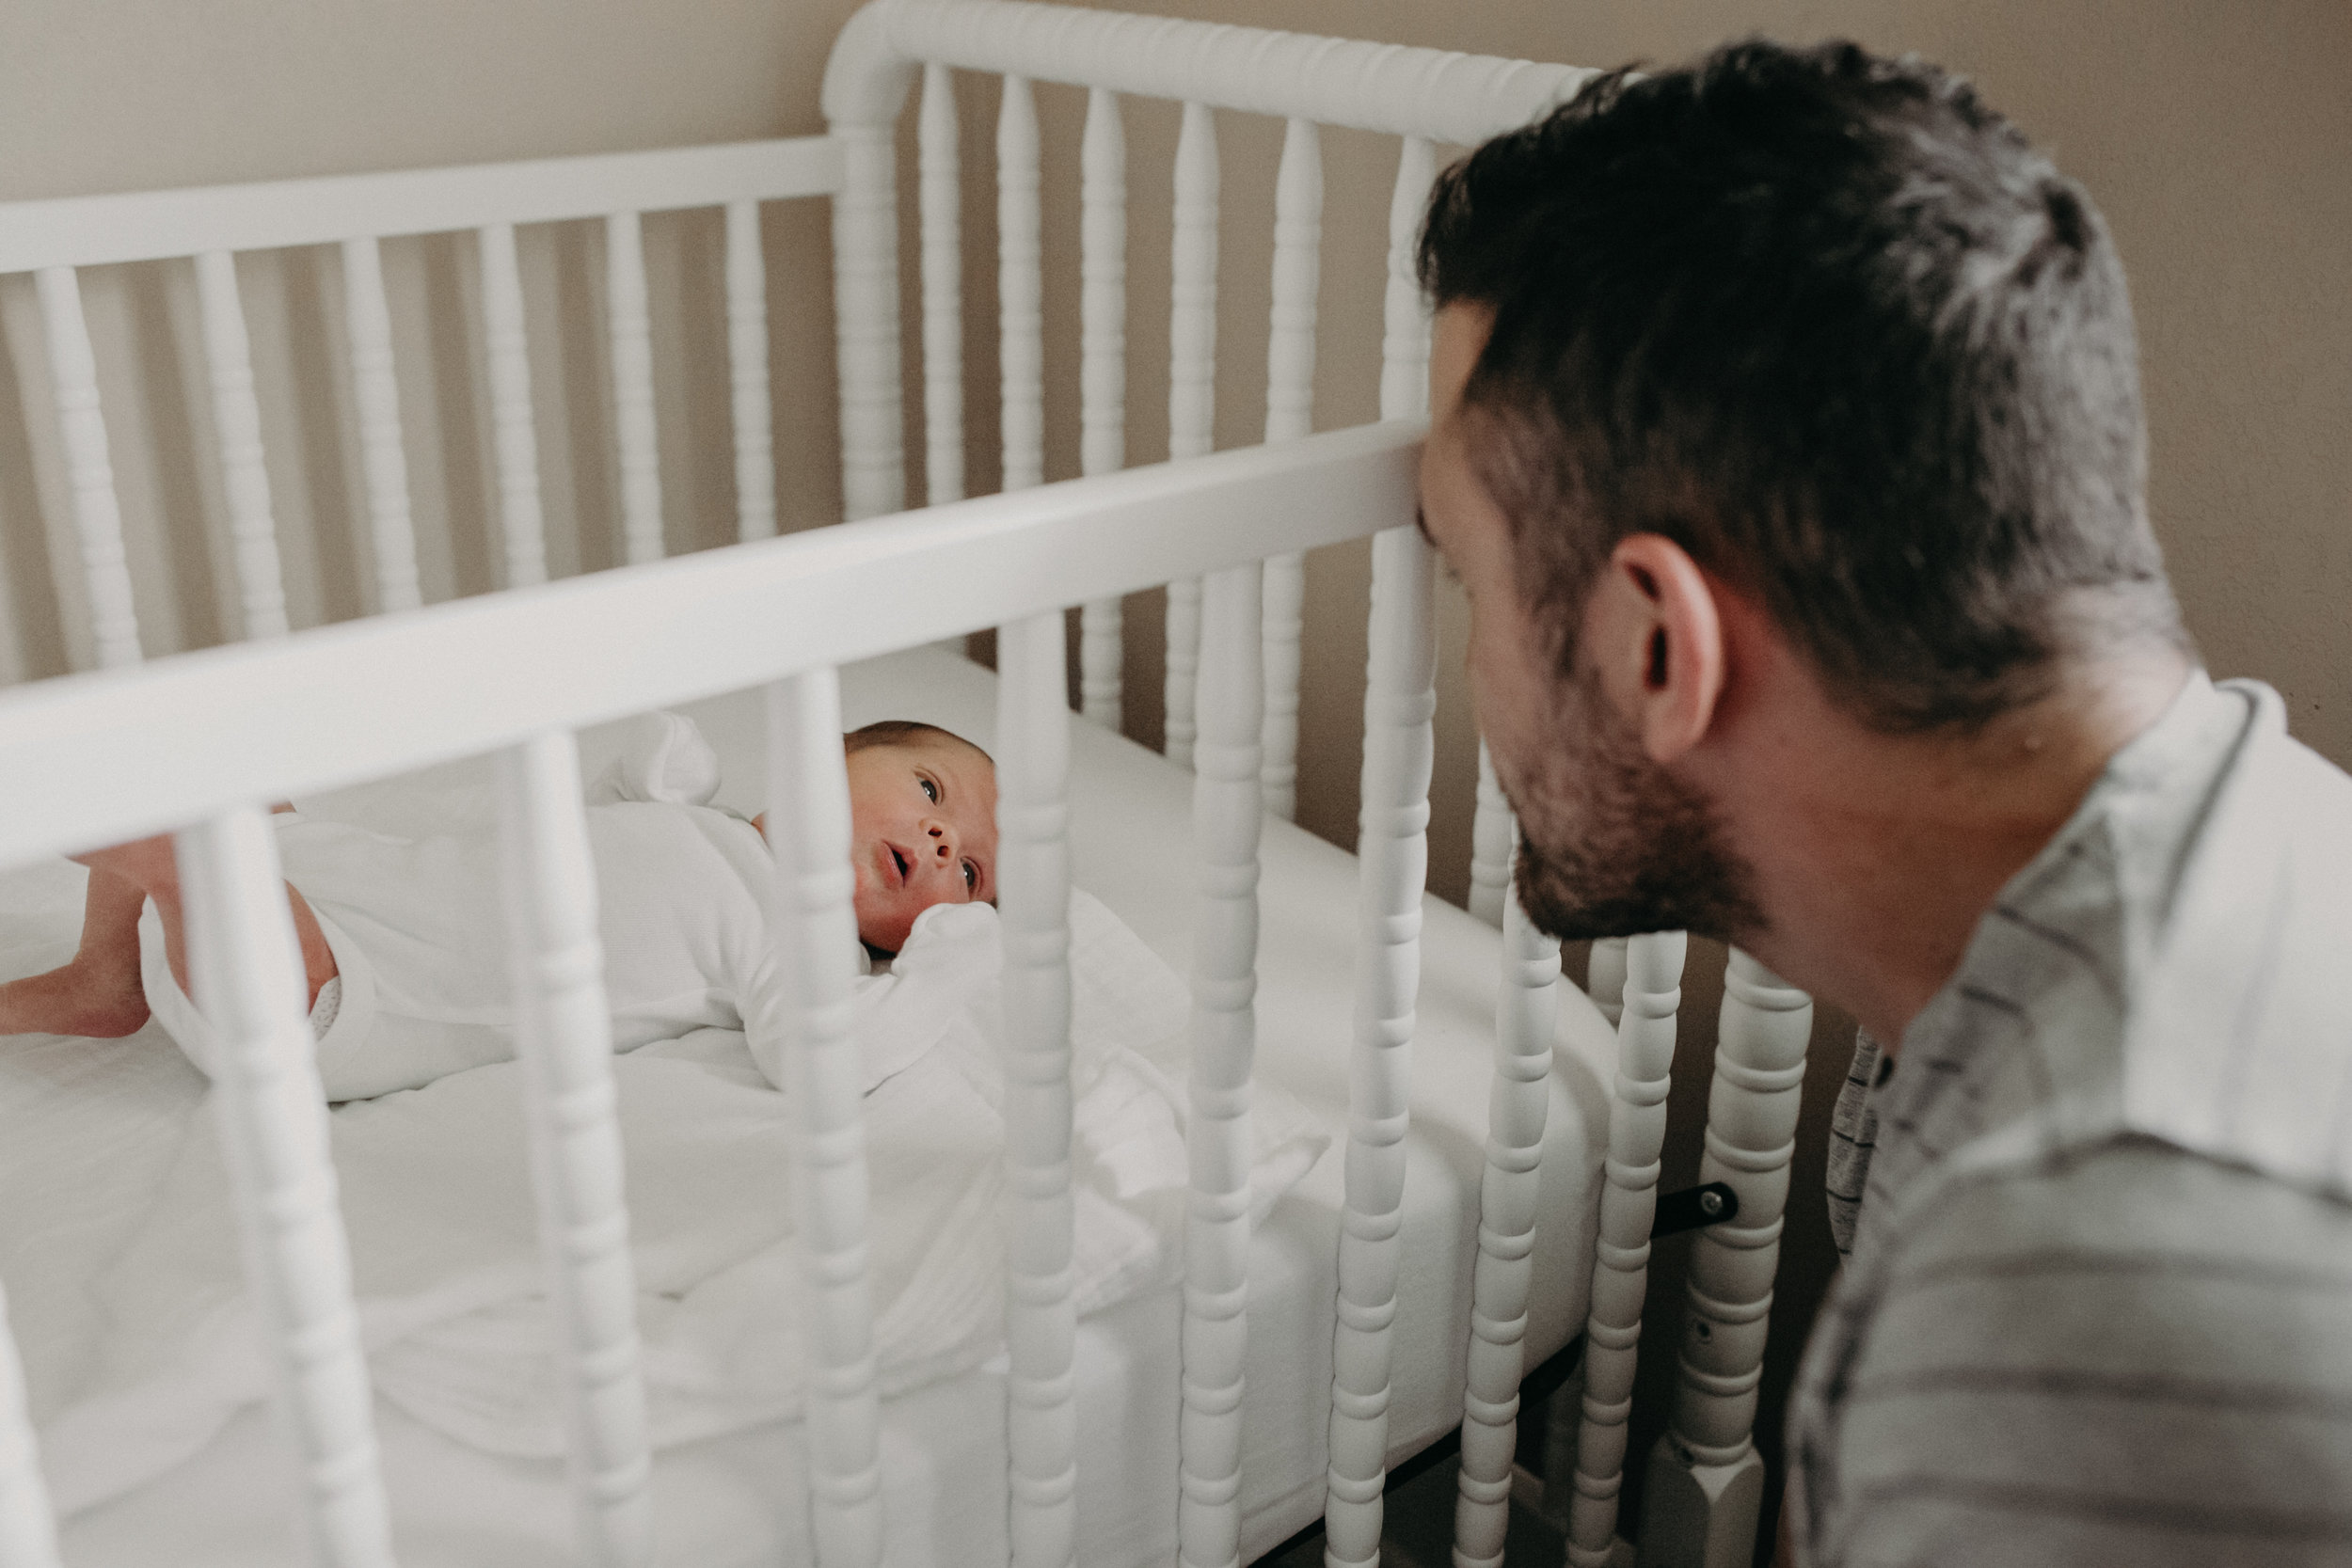 new dad looking at newborn baby in white crib